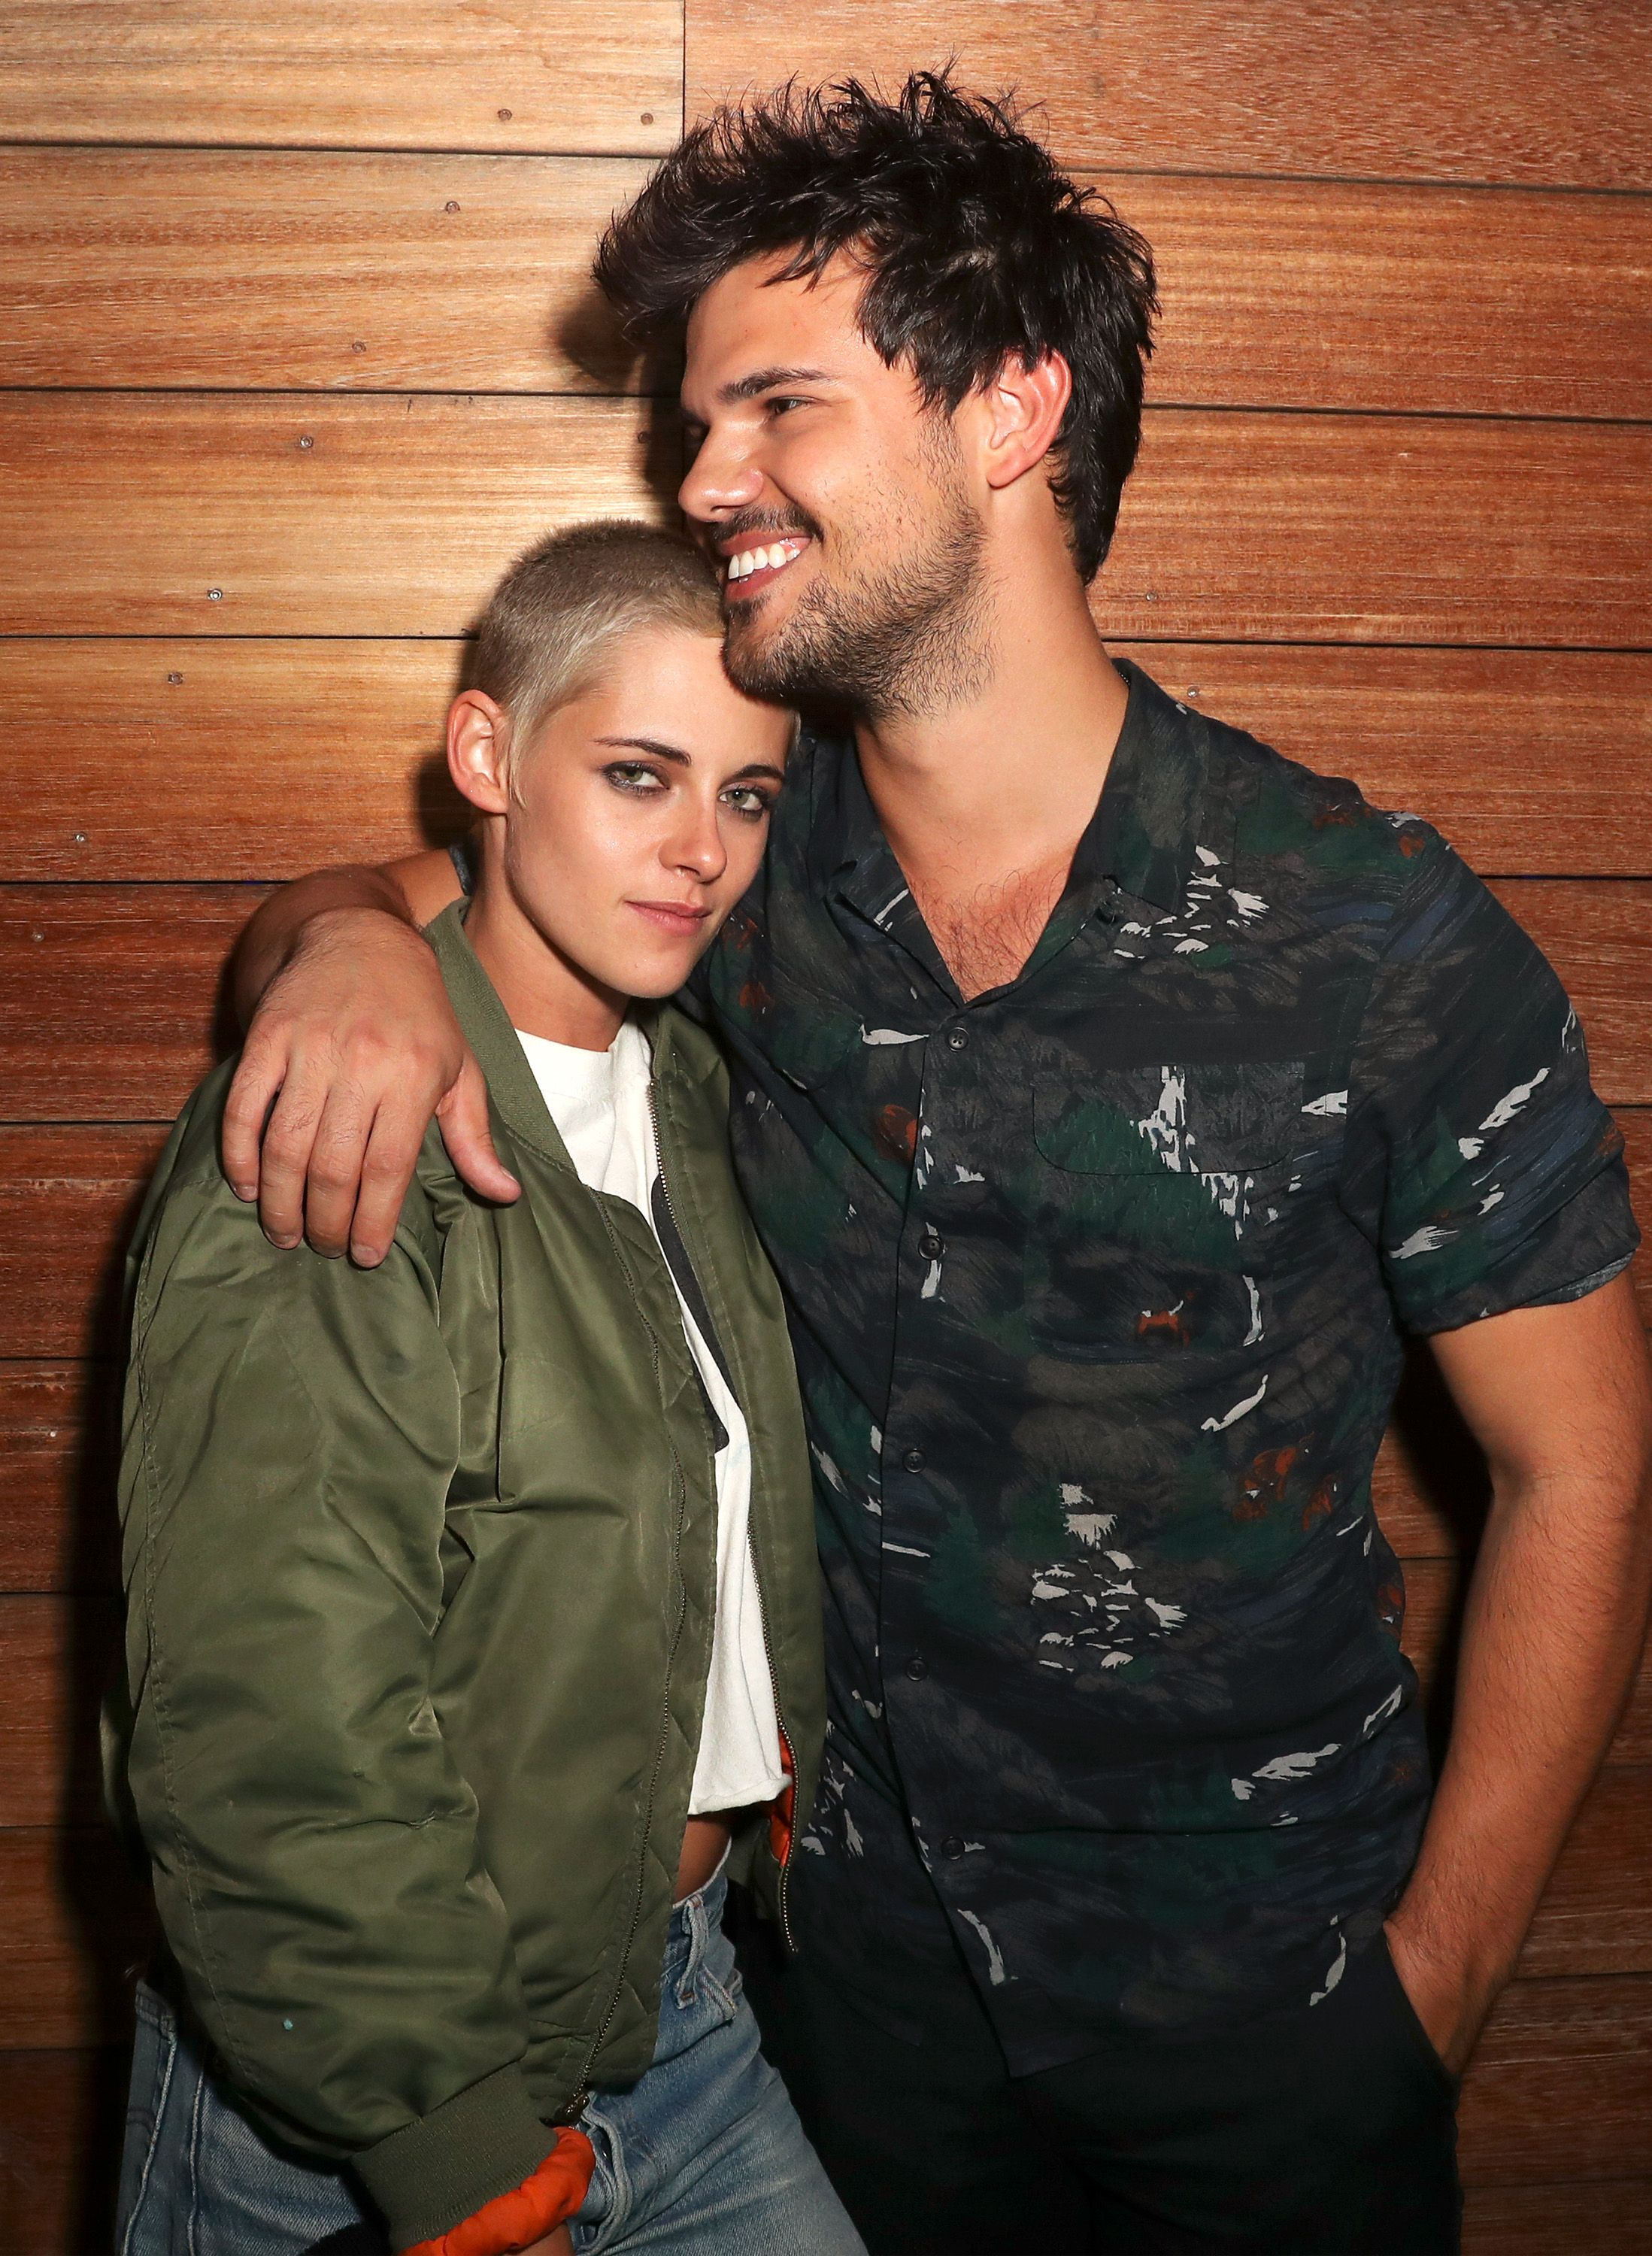 Kristen Stewart and Taylor LautnerMOSCHINO Spring Summer 2018 Menswear and Women's Resort Collection, After Party, Los Angeles, USA - 08 Jun 2017